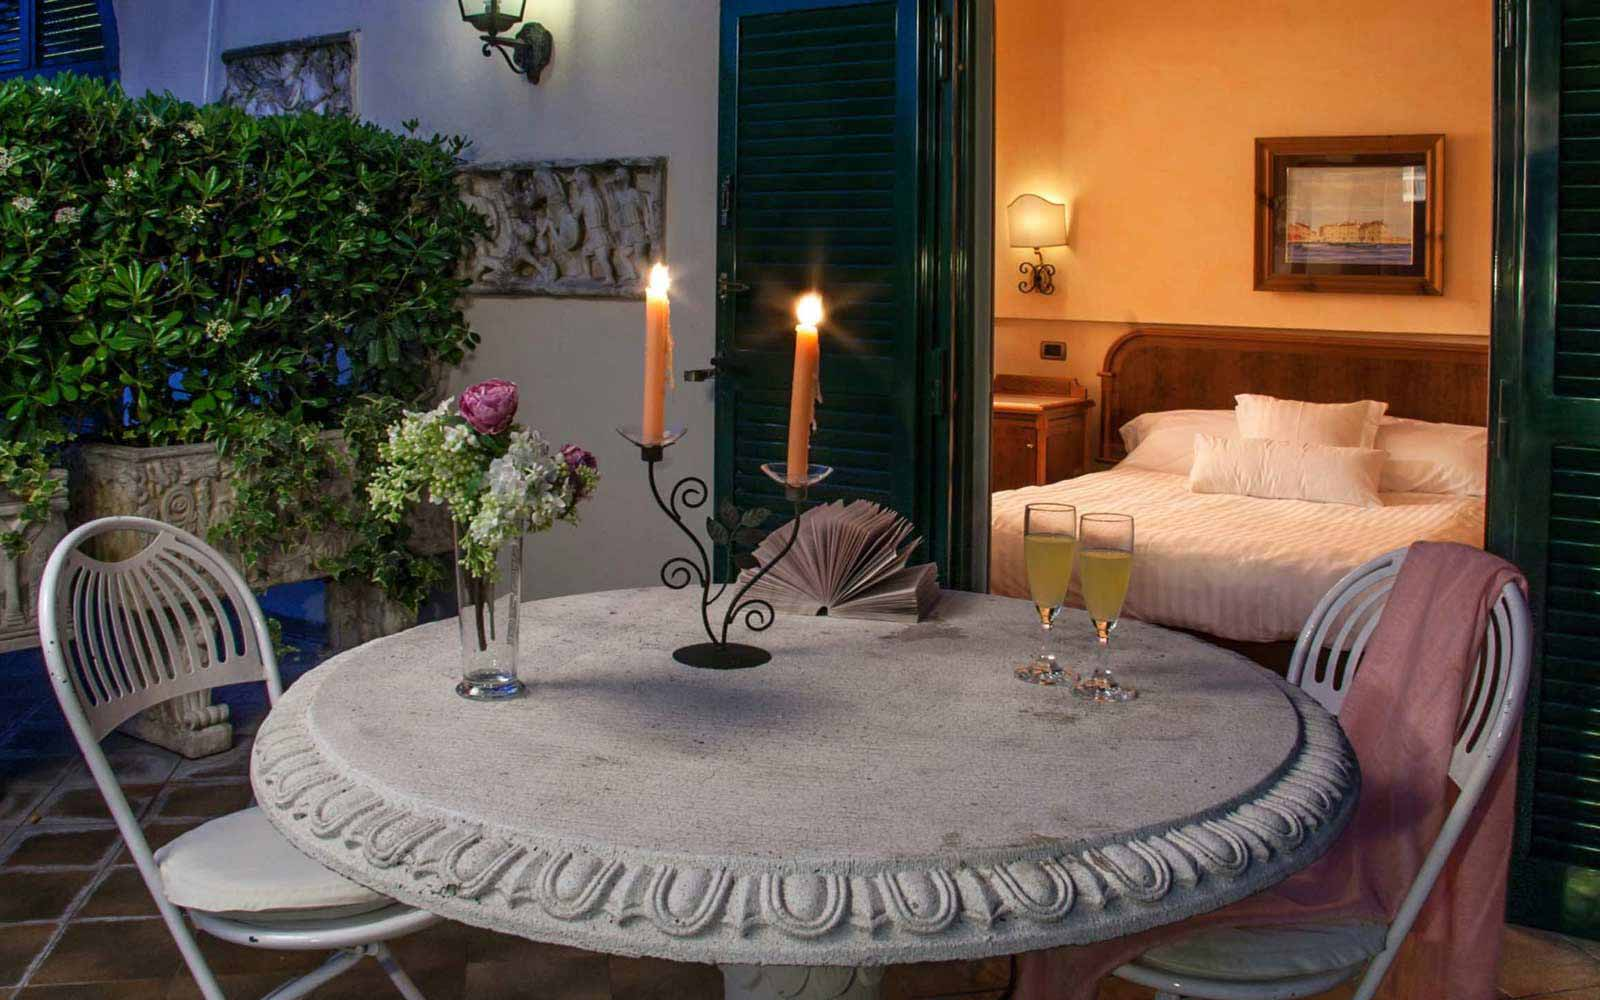 Romantic evening at Hotel Regno